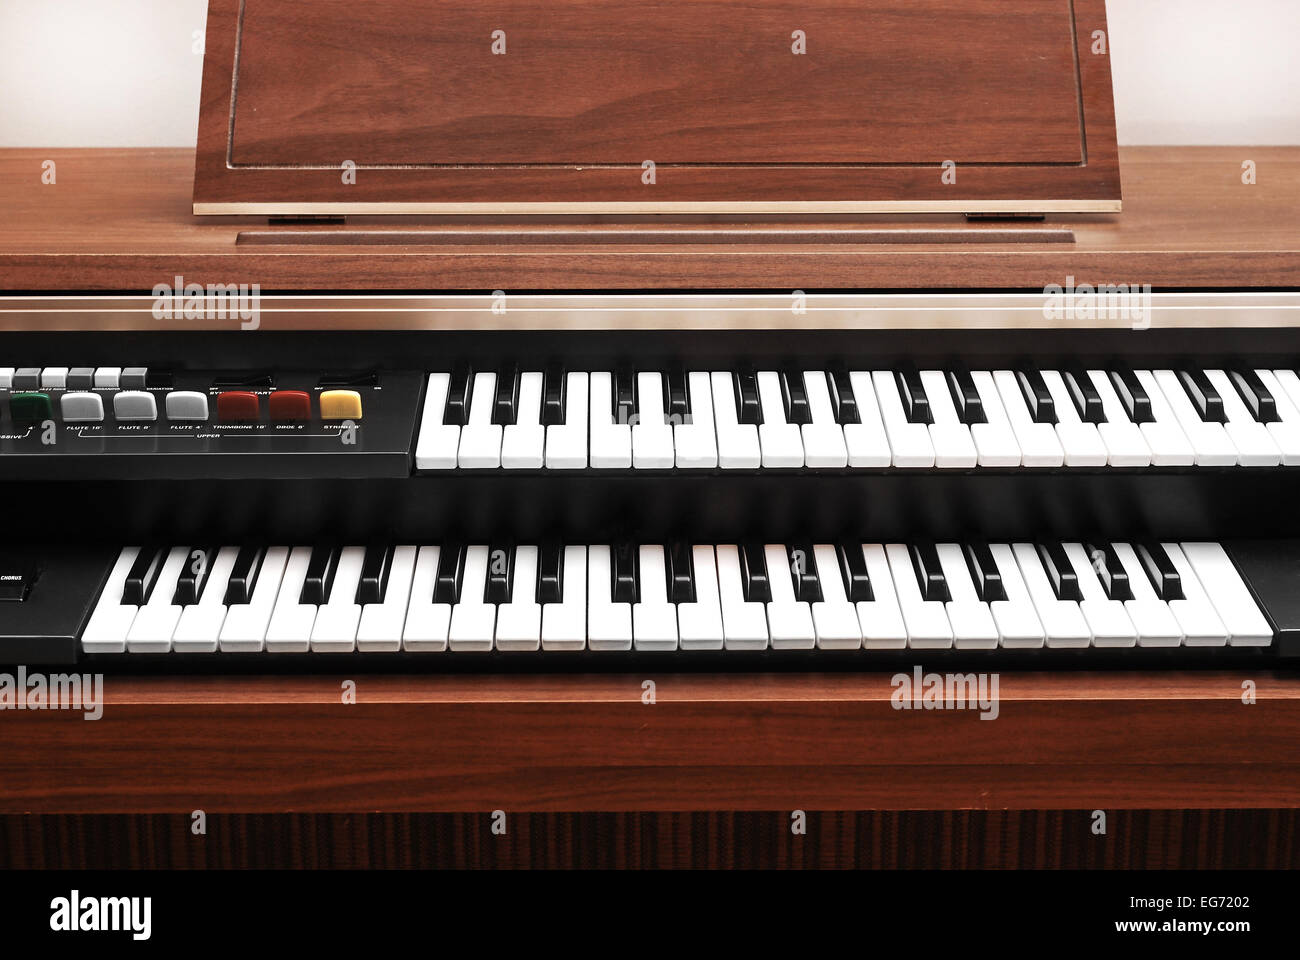 electric double keyboard wooden piano - Stock Image